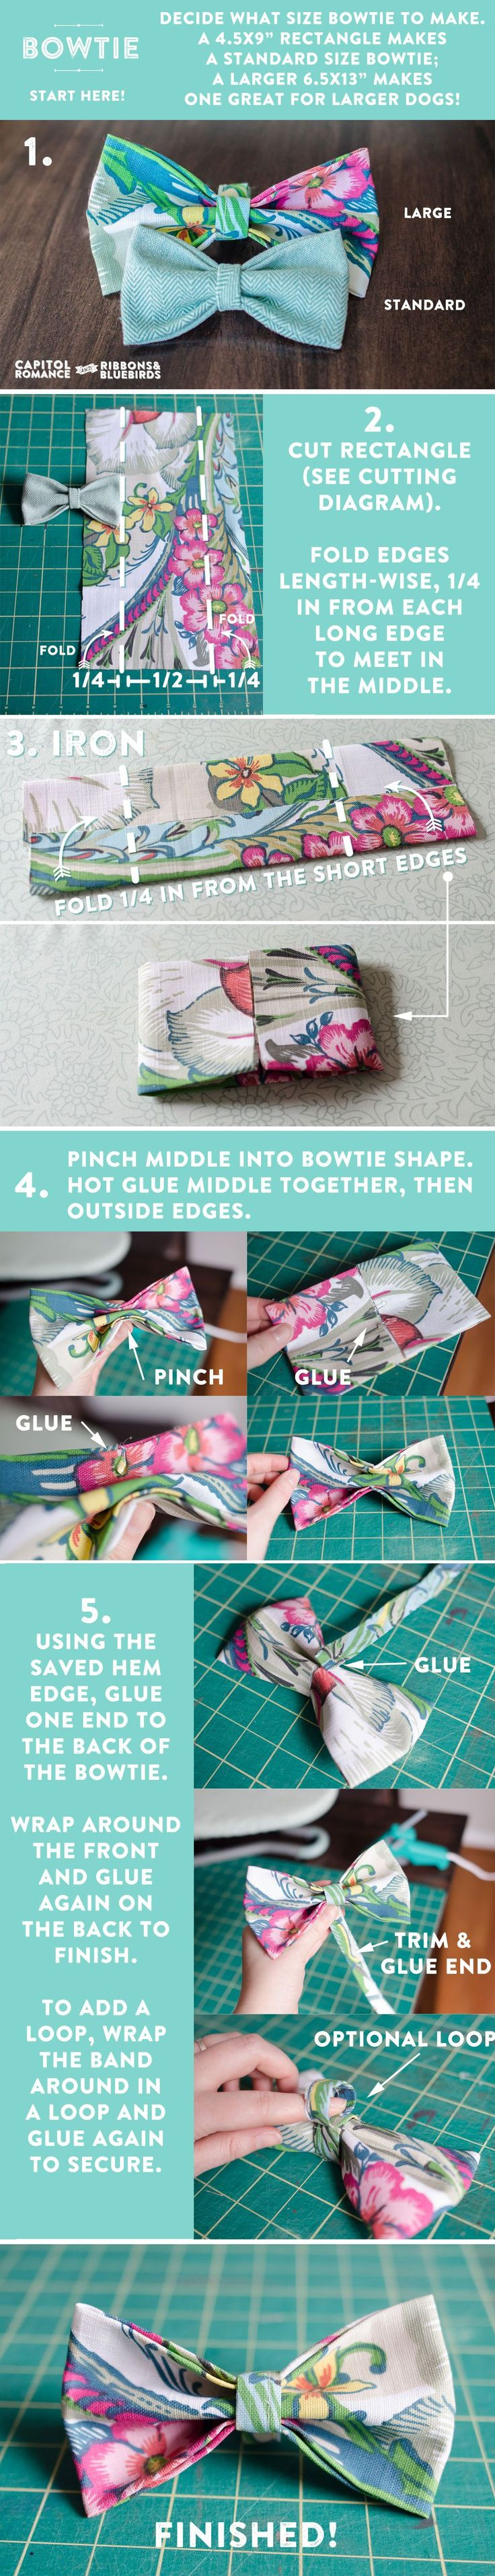 DIY Tutorial: How to Make a Bowtie from a Fabric Napkin | Capitol Romance ~ Real DC Weddings #dogdiy